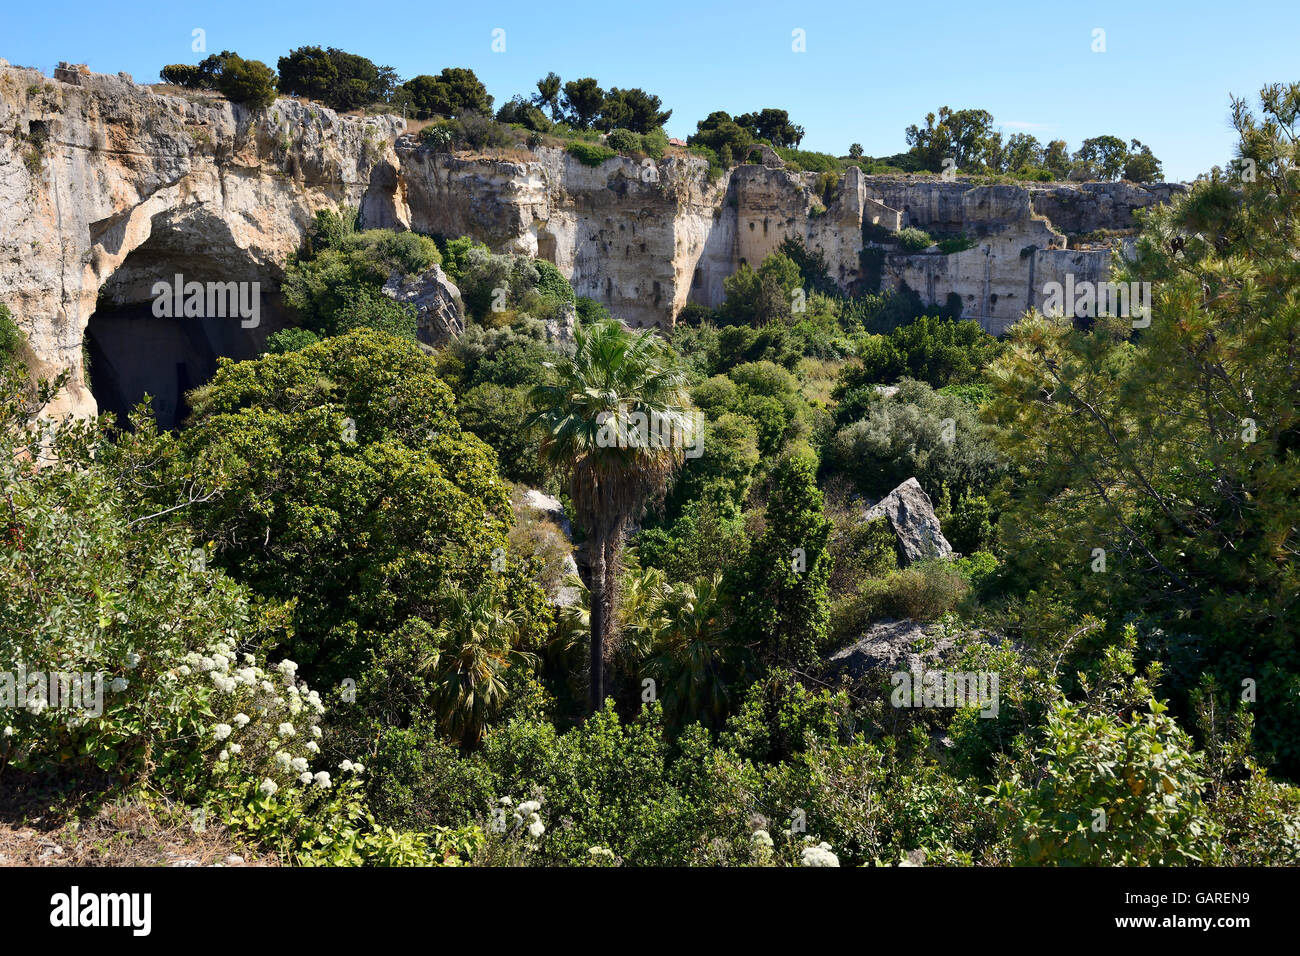 Stone quarries (Latomiein) in Neapolis Archaeological Zone, Syracuse, Sicily, Italy - Stock Image